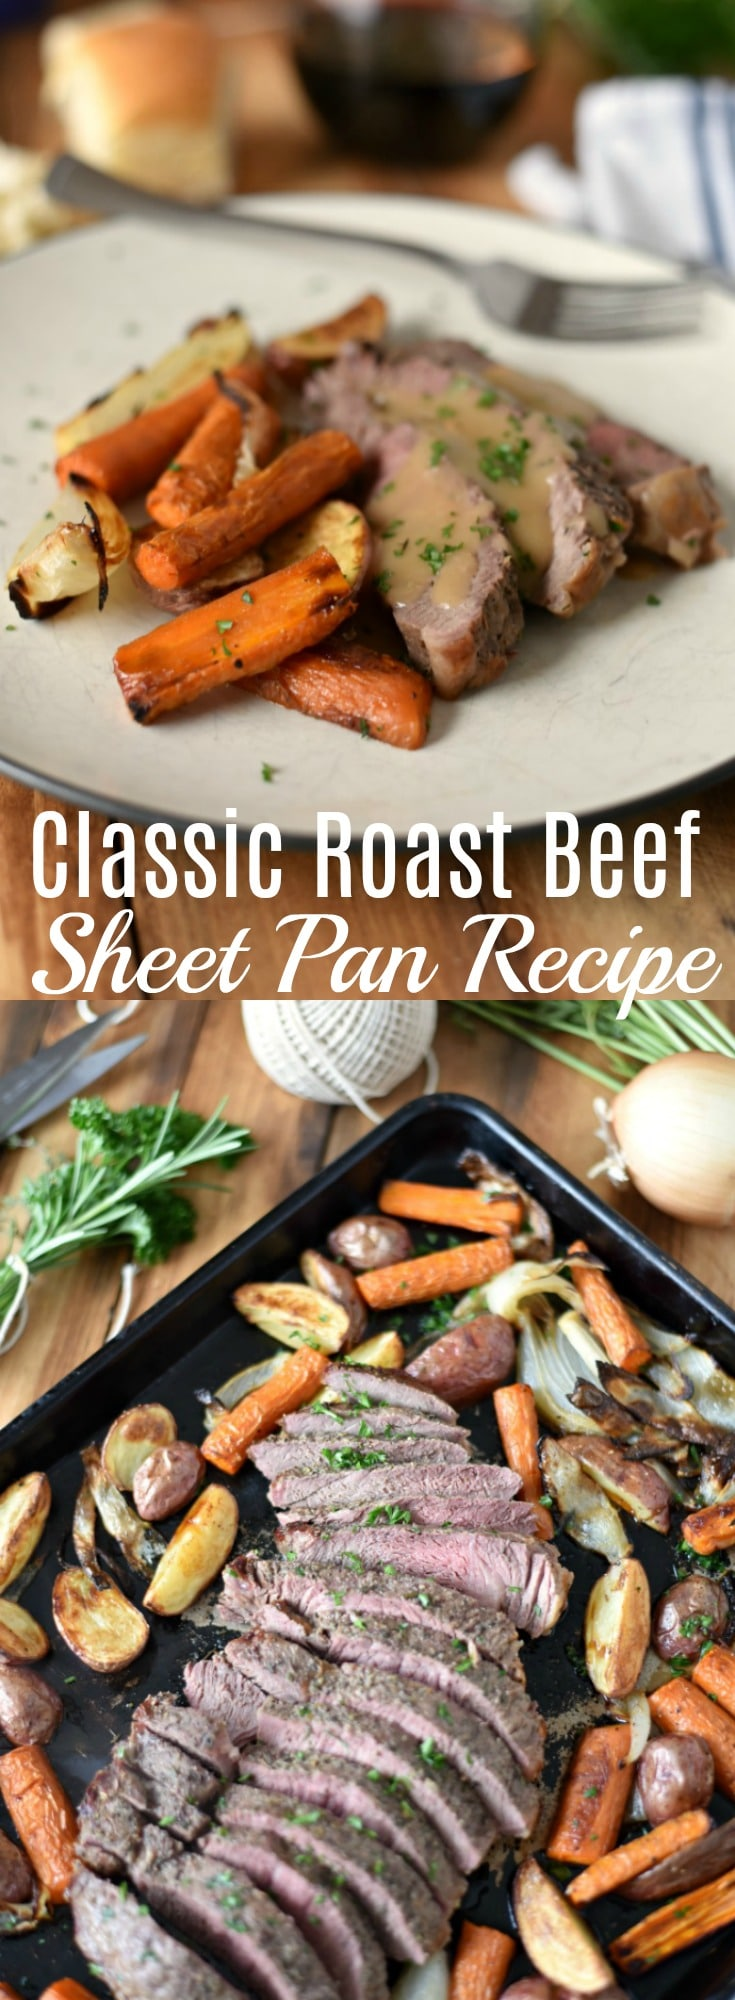 This easy Classic Roast Beef Sheet Pan Recipe is a fantastic choice for busy weeknights. The Top Sirloin Steak has all the flavor in a fraction of the time.